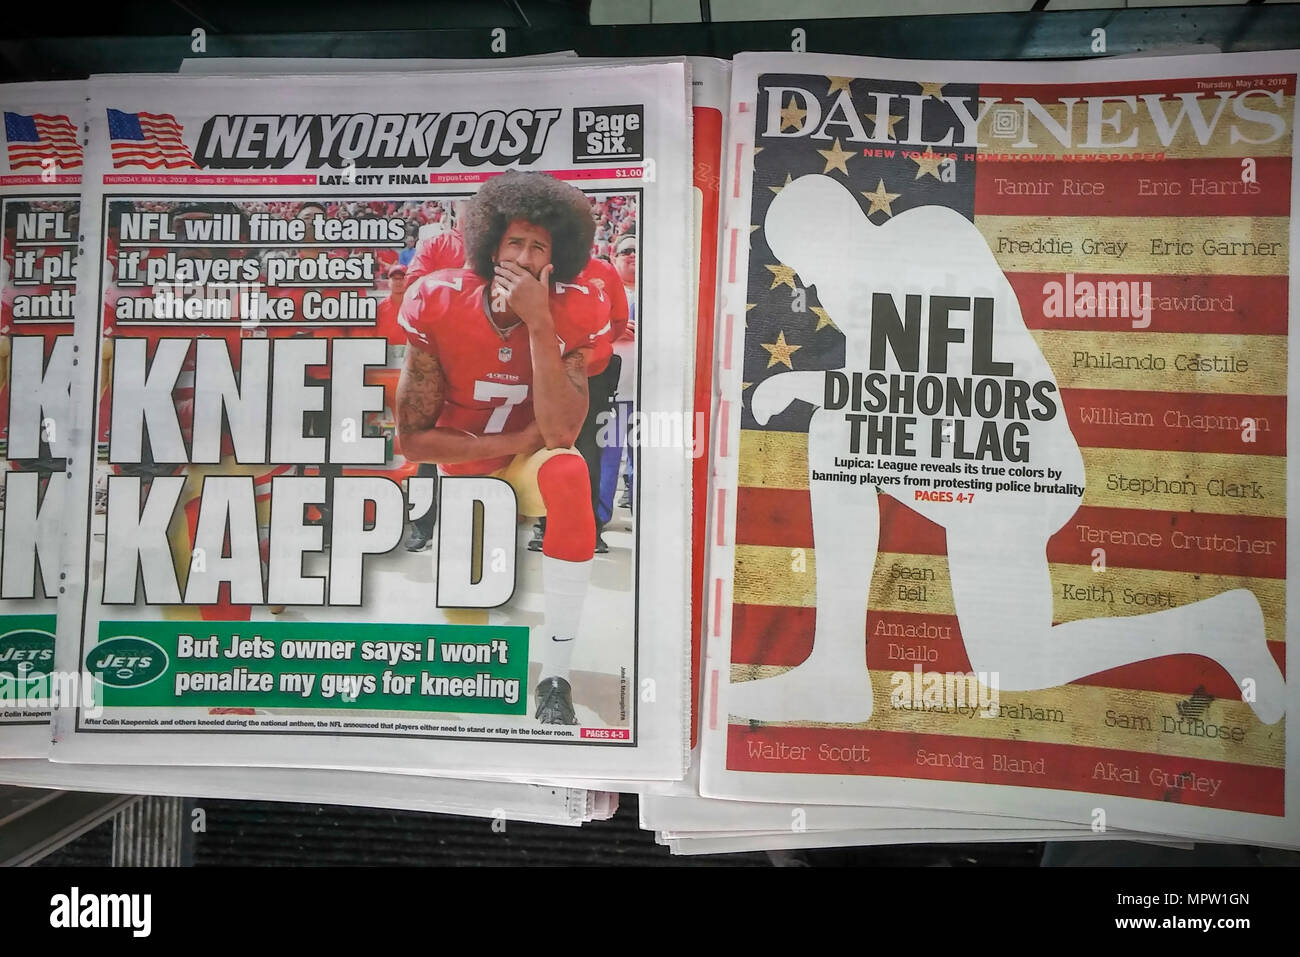 The New York Daily News and New York Post newspapers on Thursday, May 24, 2018 report on the NFL ruling that players must stand during the national anthem but are allowed to remain in the locker room if they do not wish to participate. The ruling is a compromise over some players 'taking a knee' during the anthem as a protest against racism and police brutality. (© Richard B. Levine) - Stock Image